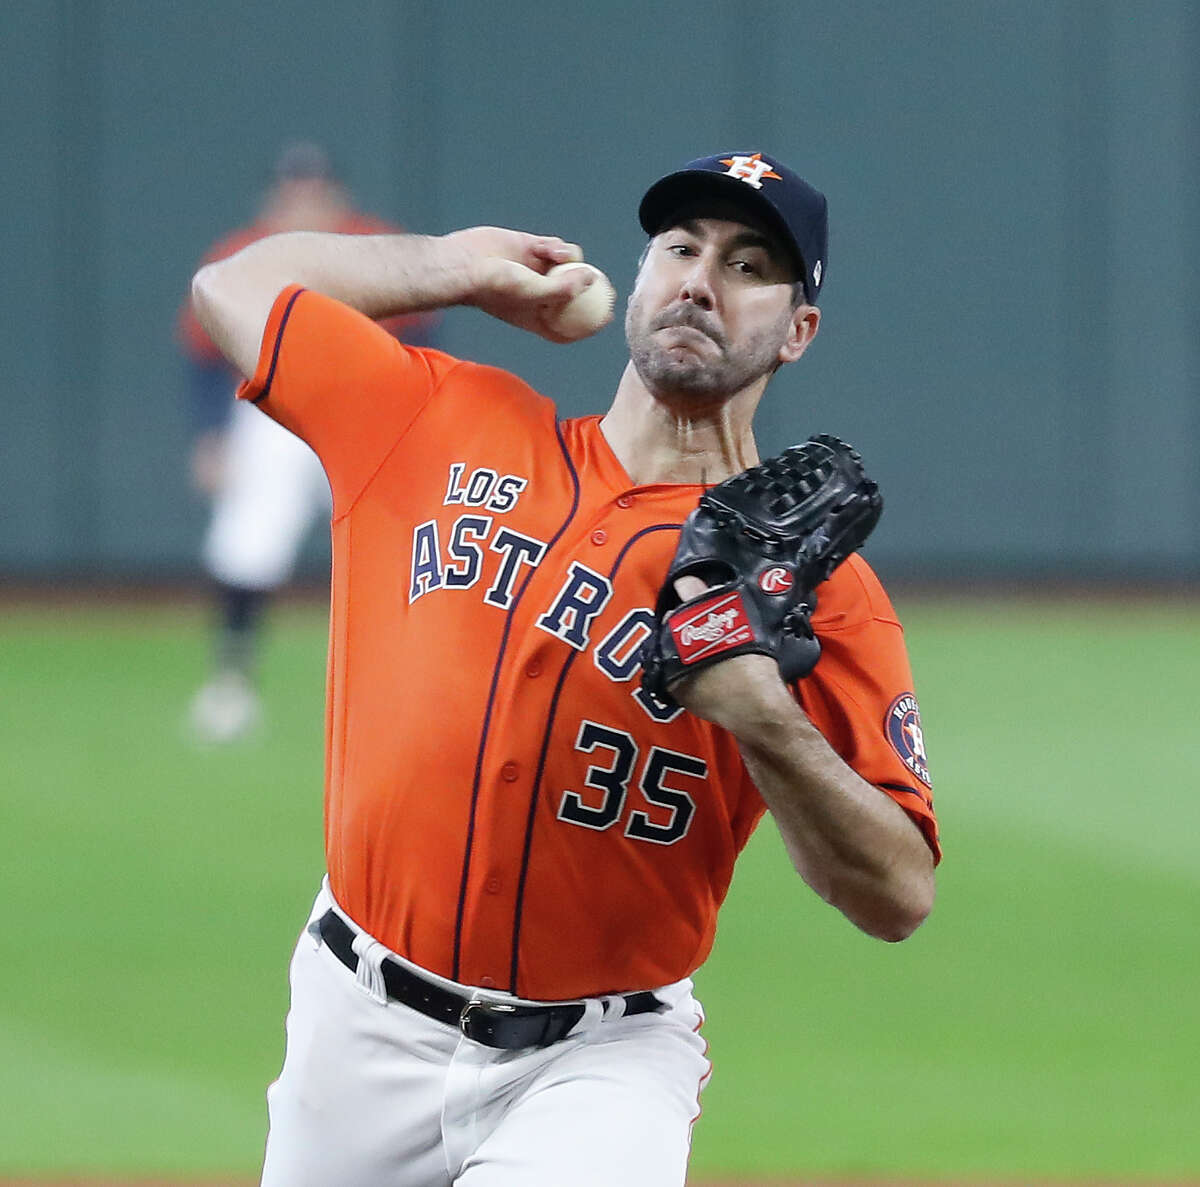 Houston Astros starting pitcher Justin Verlander (35) pitches in the first inning of an MLB baseball game at Minute Maid Park, Sunday, Sept. 22, 2019, in Houston.